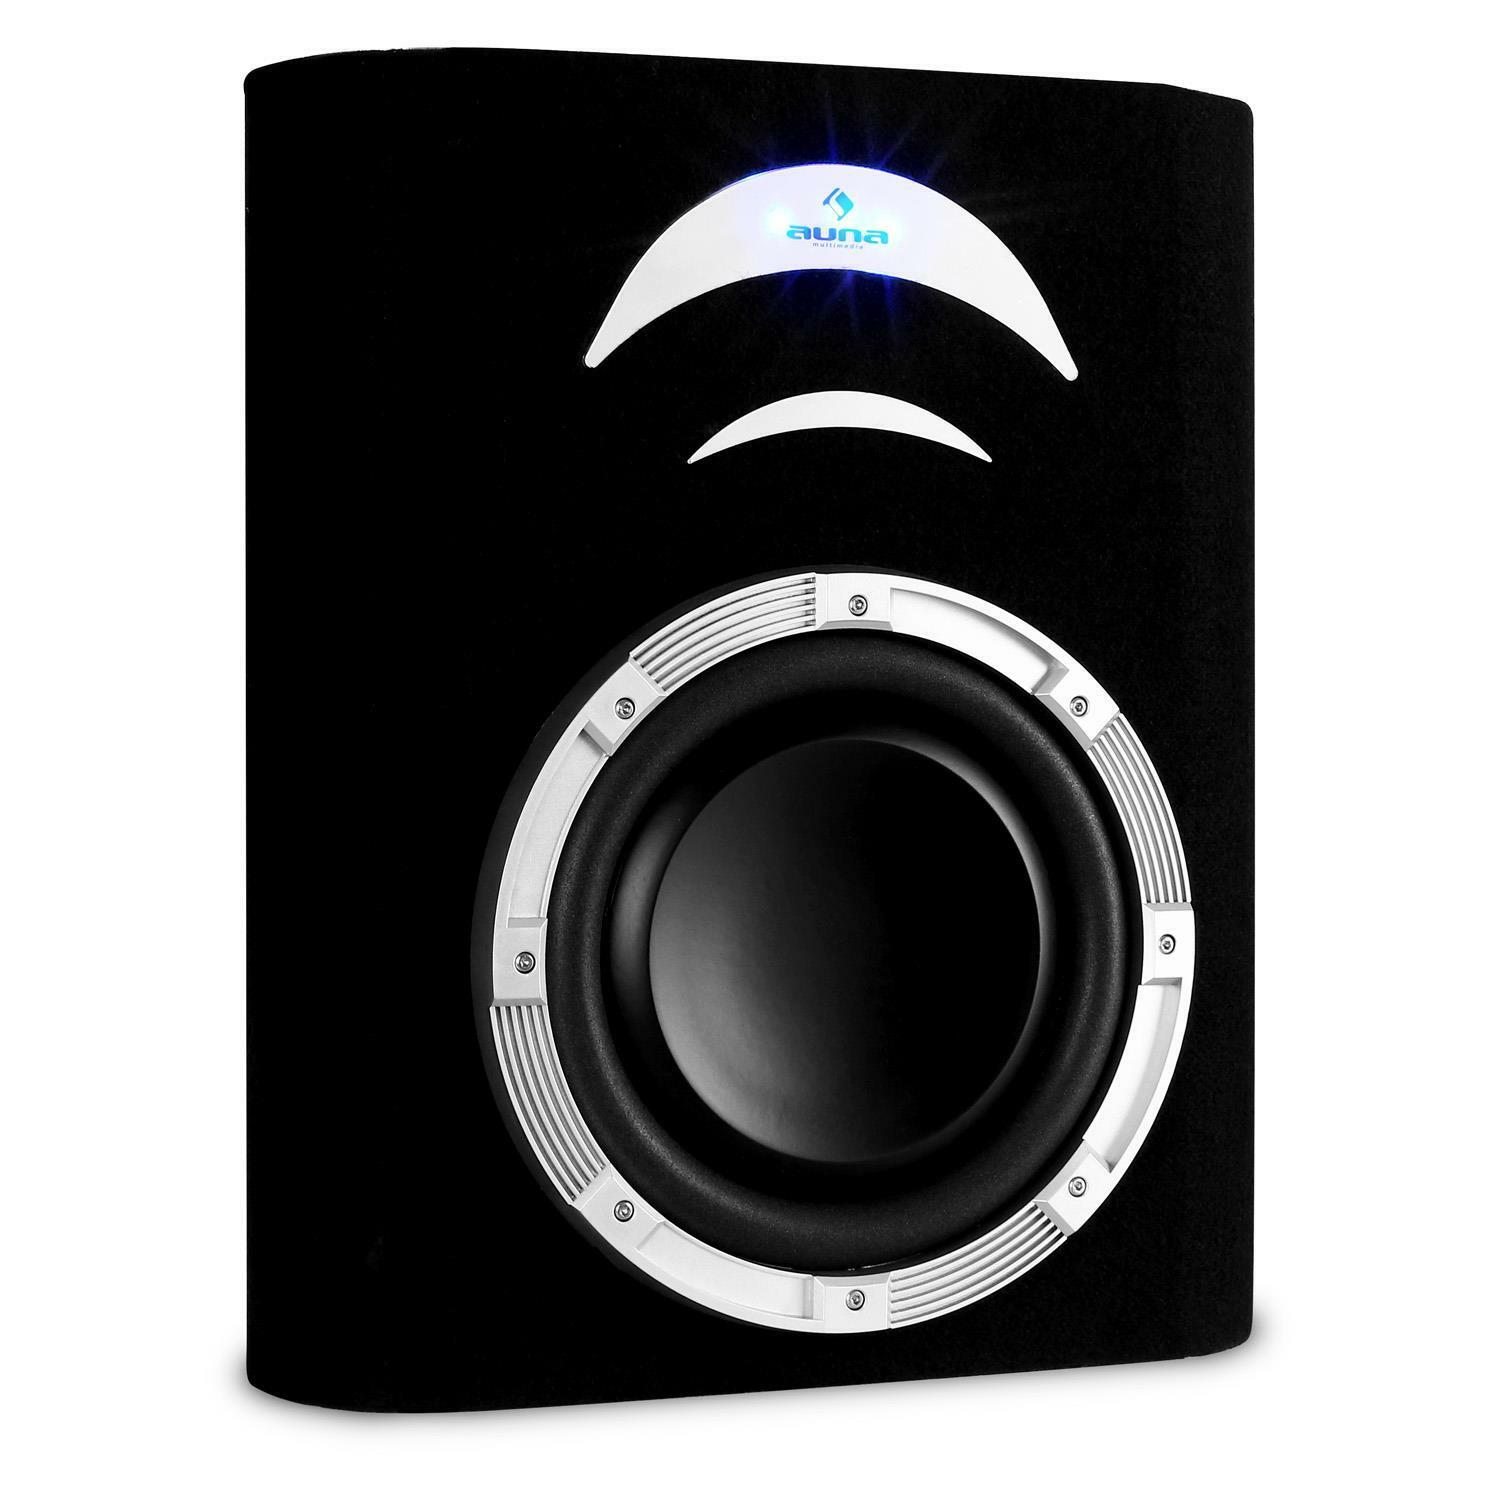 caisson de basses voiture subwoofer plat 25cm auto sono 500w effet lumineux led eur 59 99. Black Bedroom Furniture Sets. Home Design Ideas